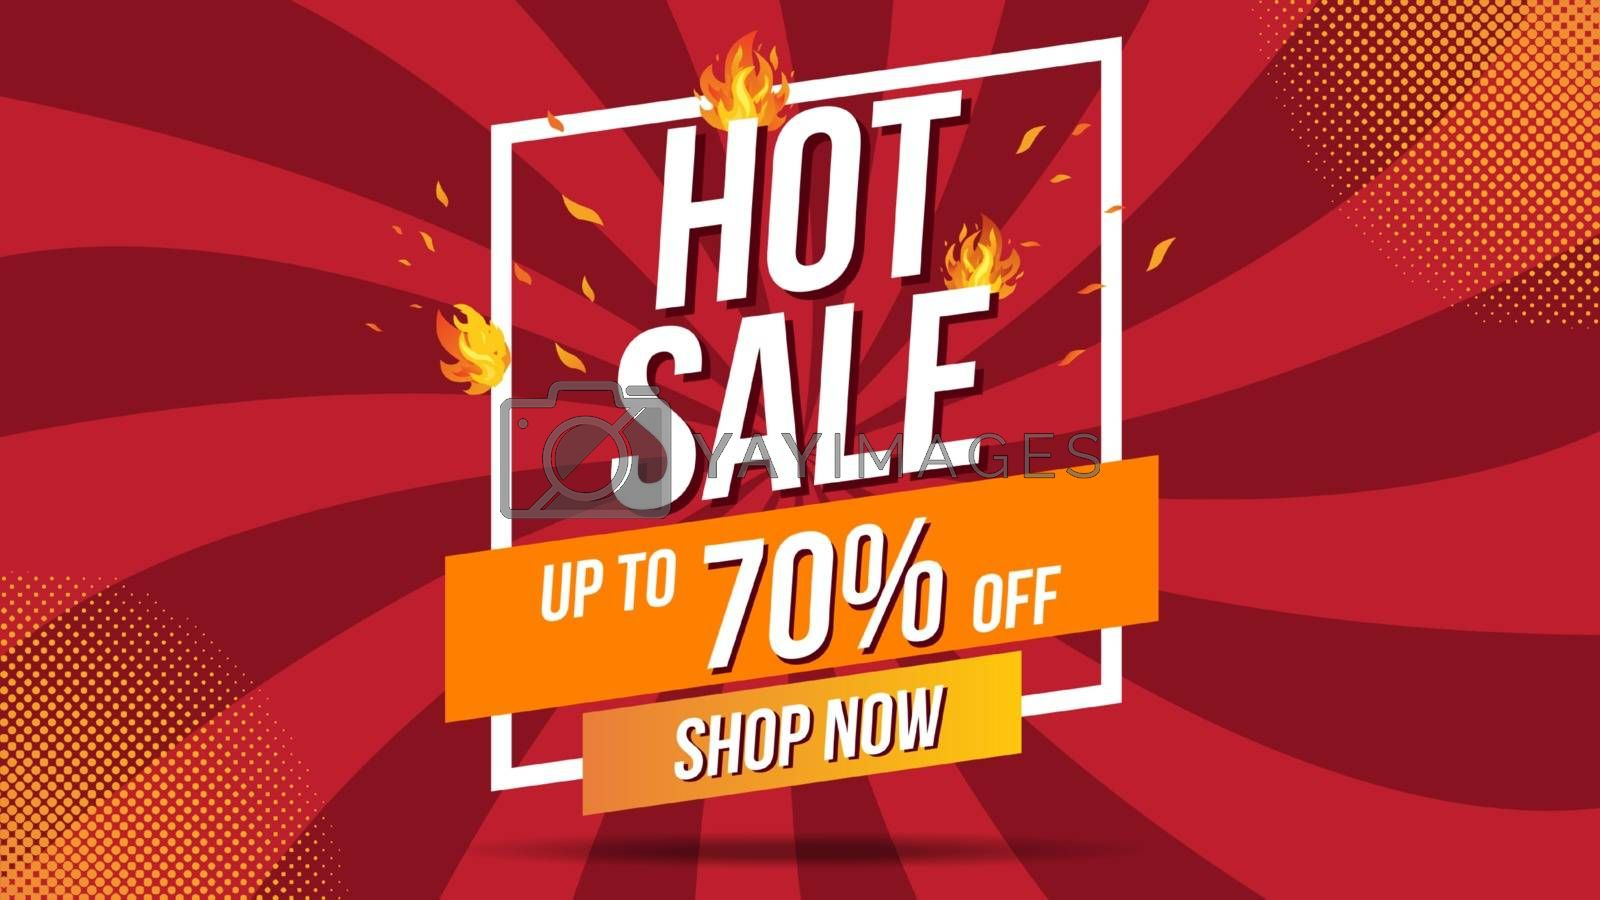 Hot Sale Fire Burn template banner concept design, Big sale spec by Zeedoherty